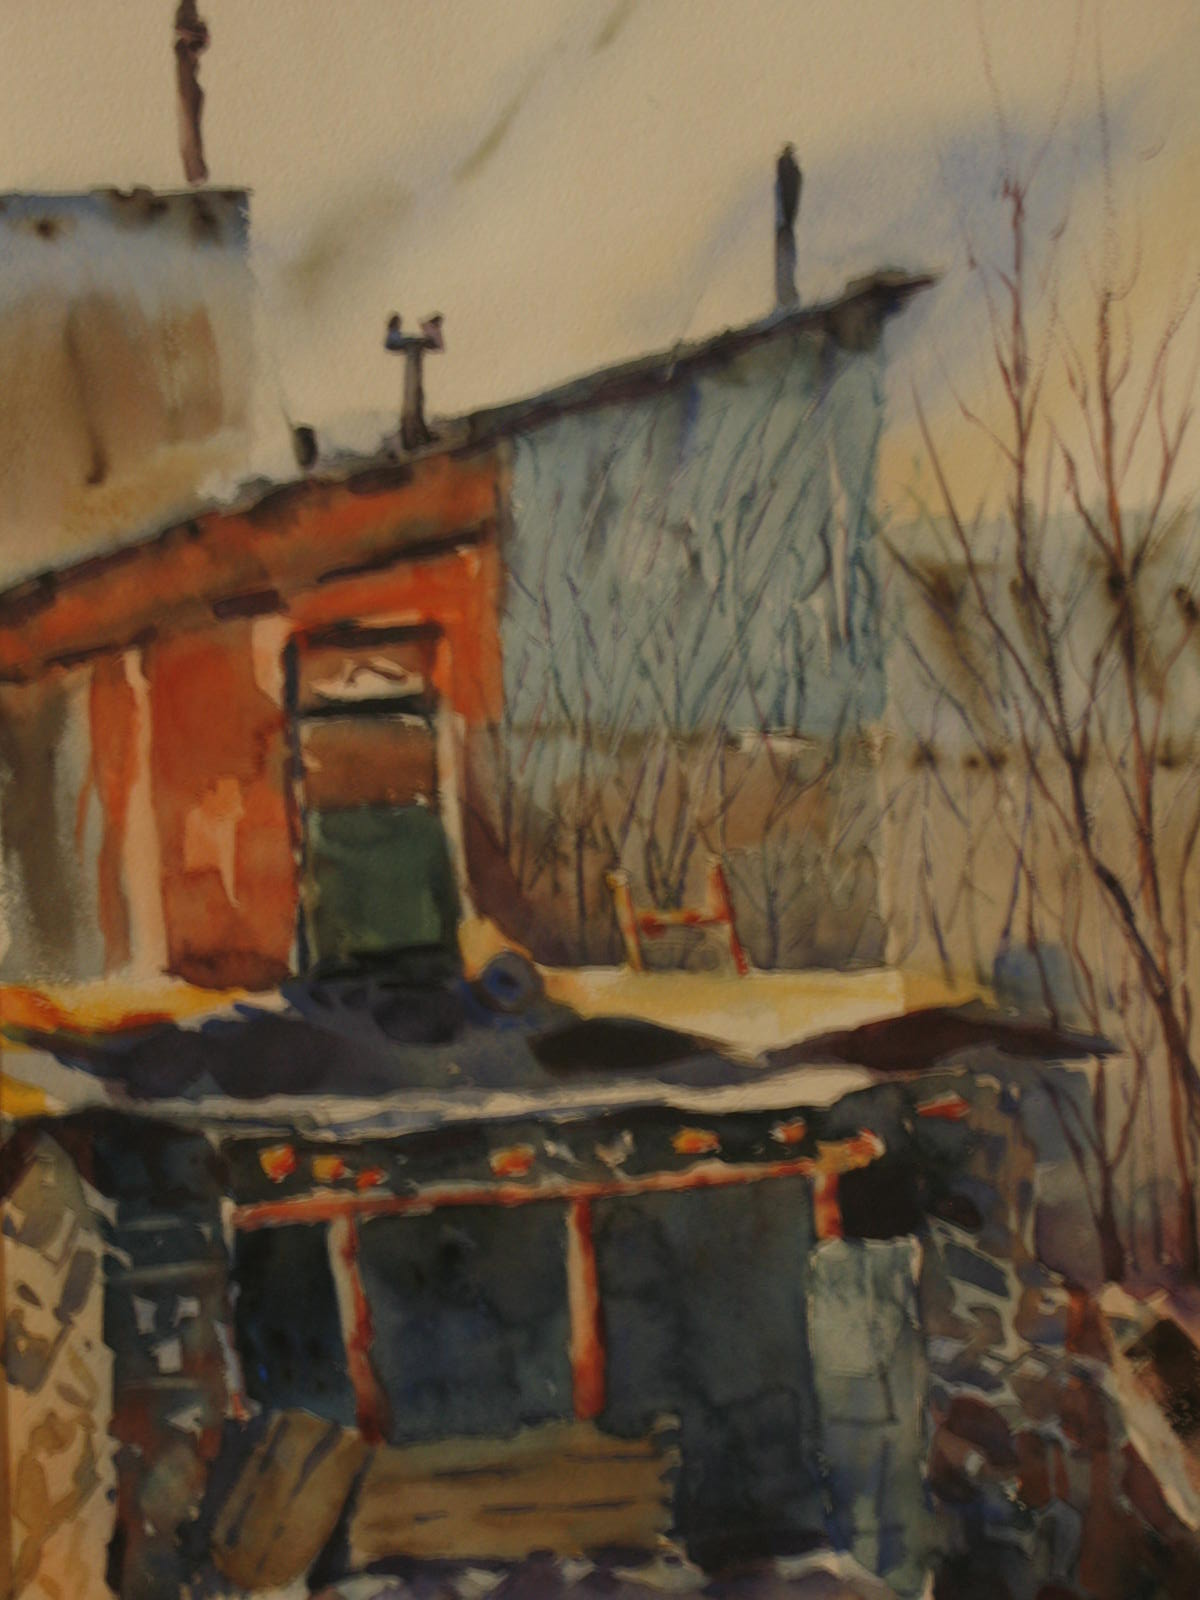 Door+on+the+roof+52x33+cm+watercolor.JPG